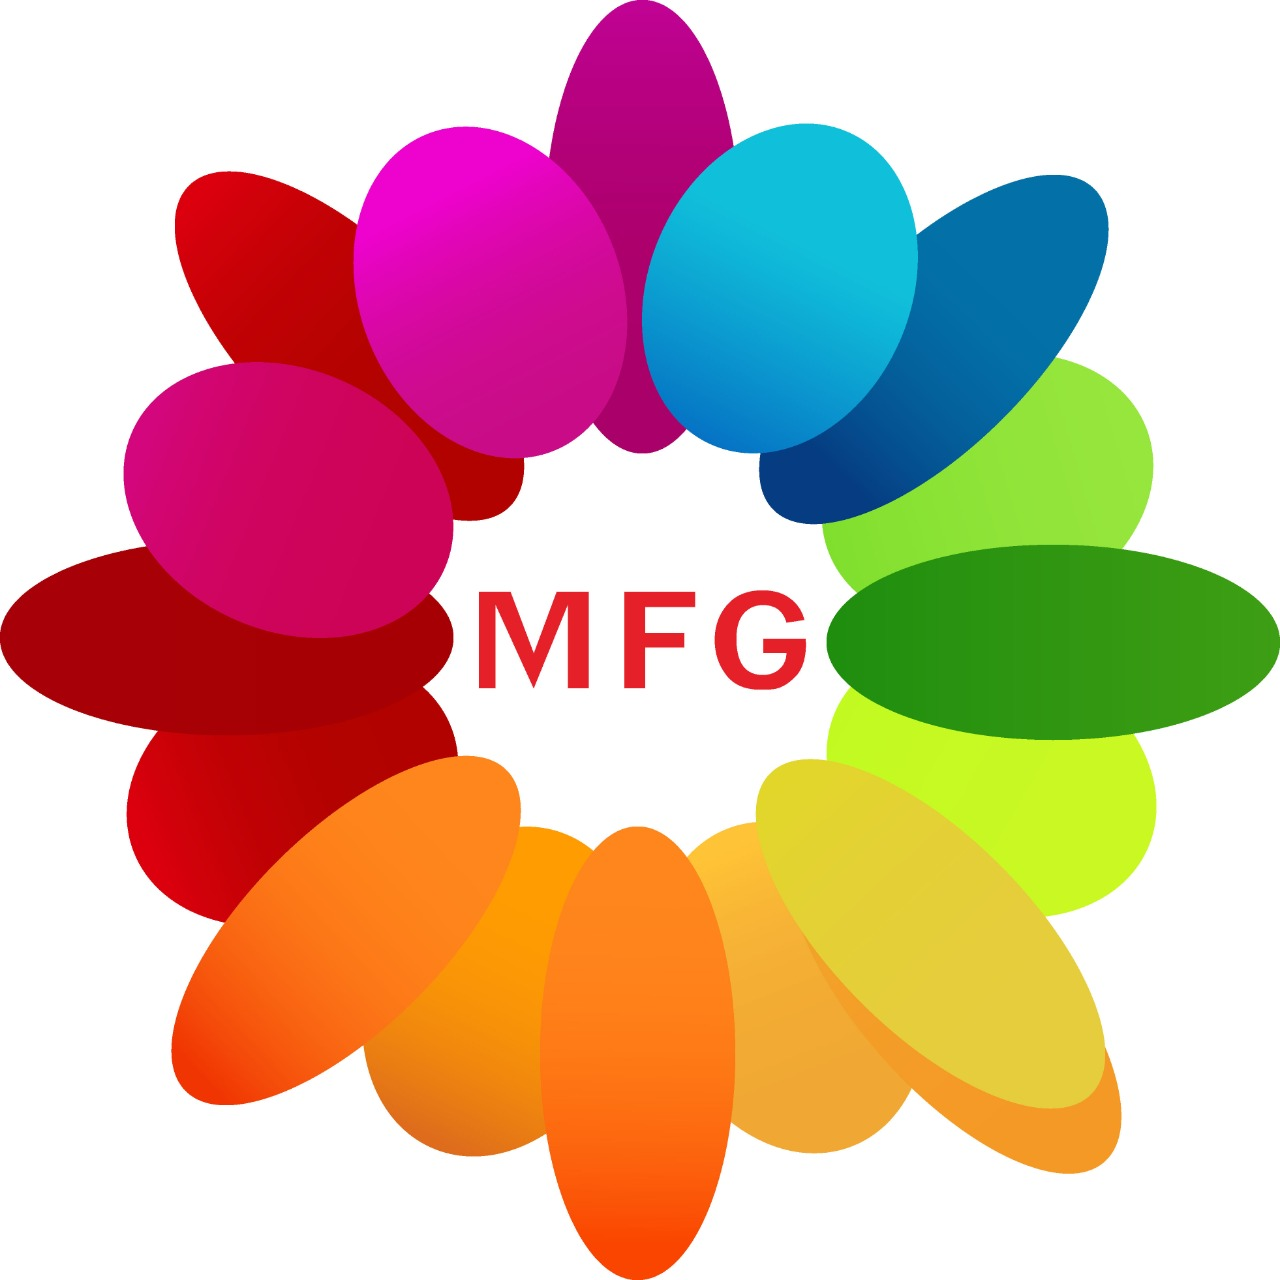 Bunch Of 6 Orchids, 16 pieces Ferero Rocher Box, 6 Inch Teddy